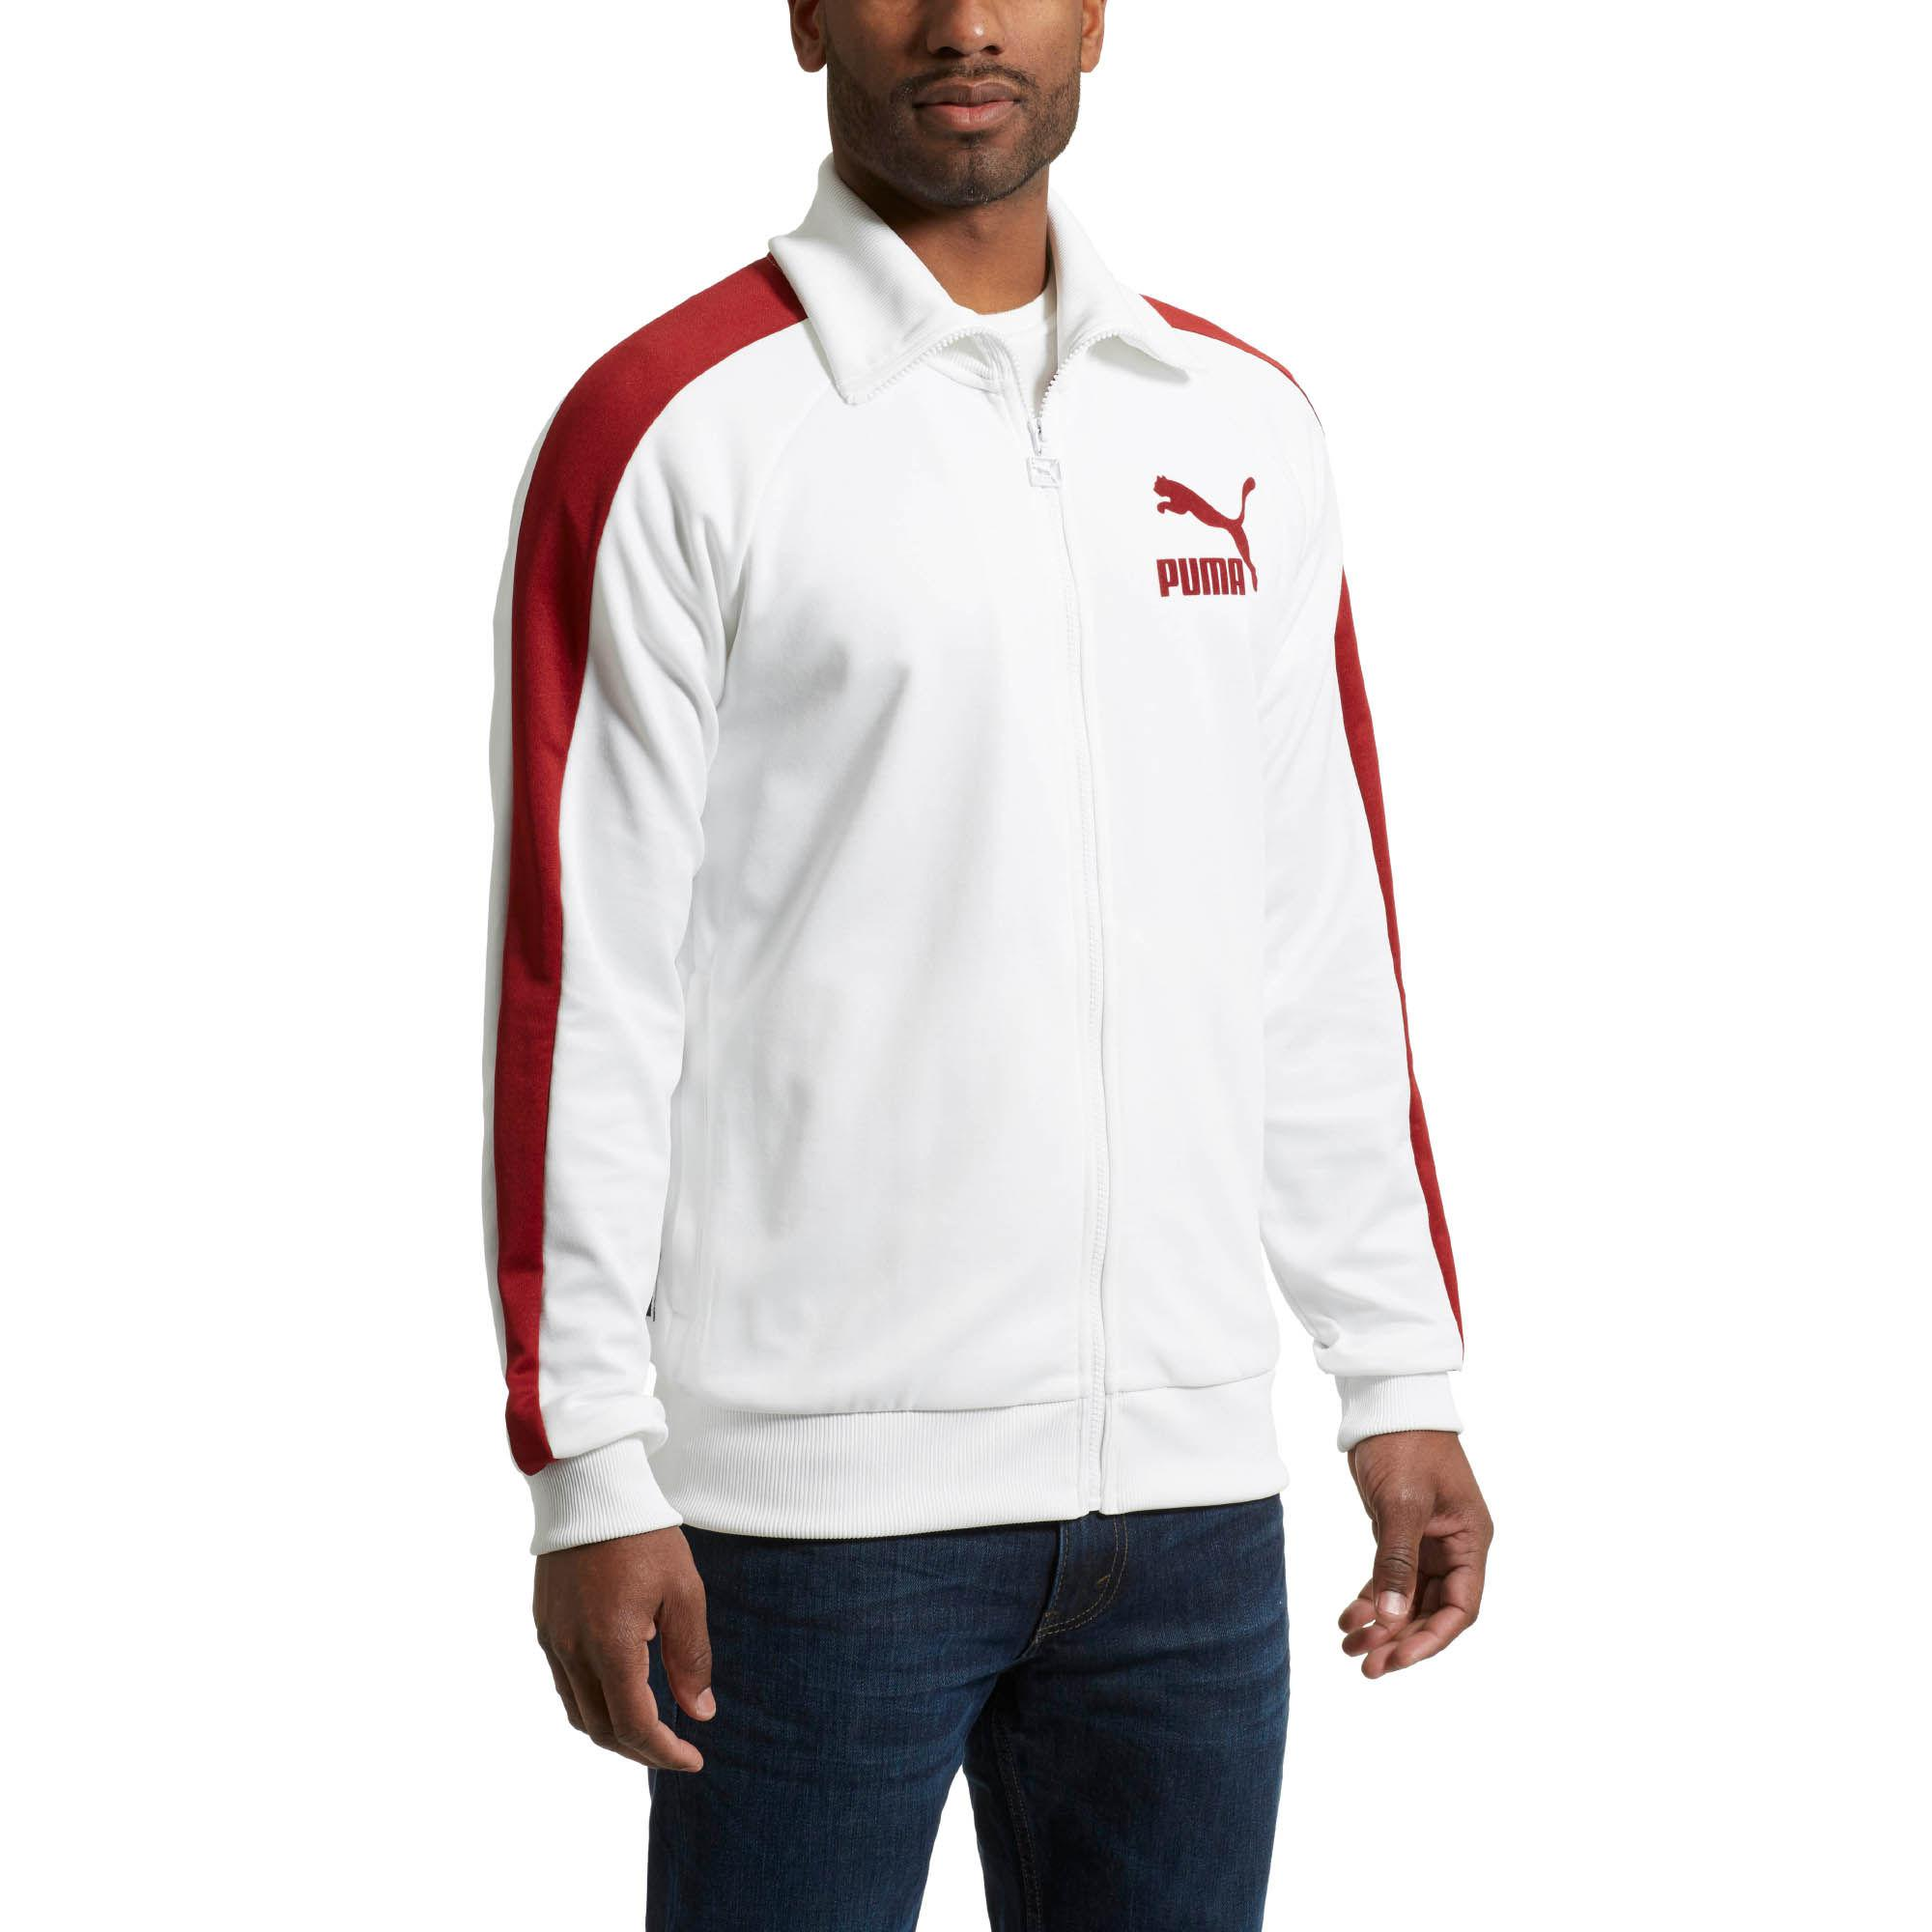 28d4a13ba720 Lyst - PUMA T7 Vintage Men s Track Jacket in White for Men